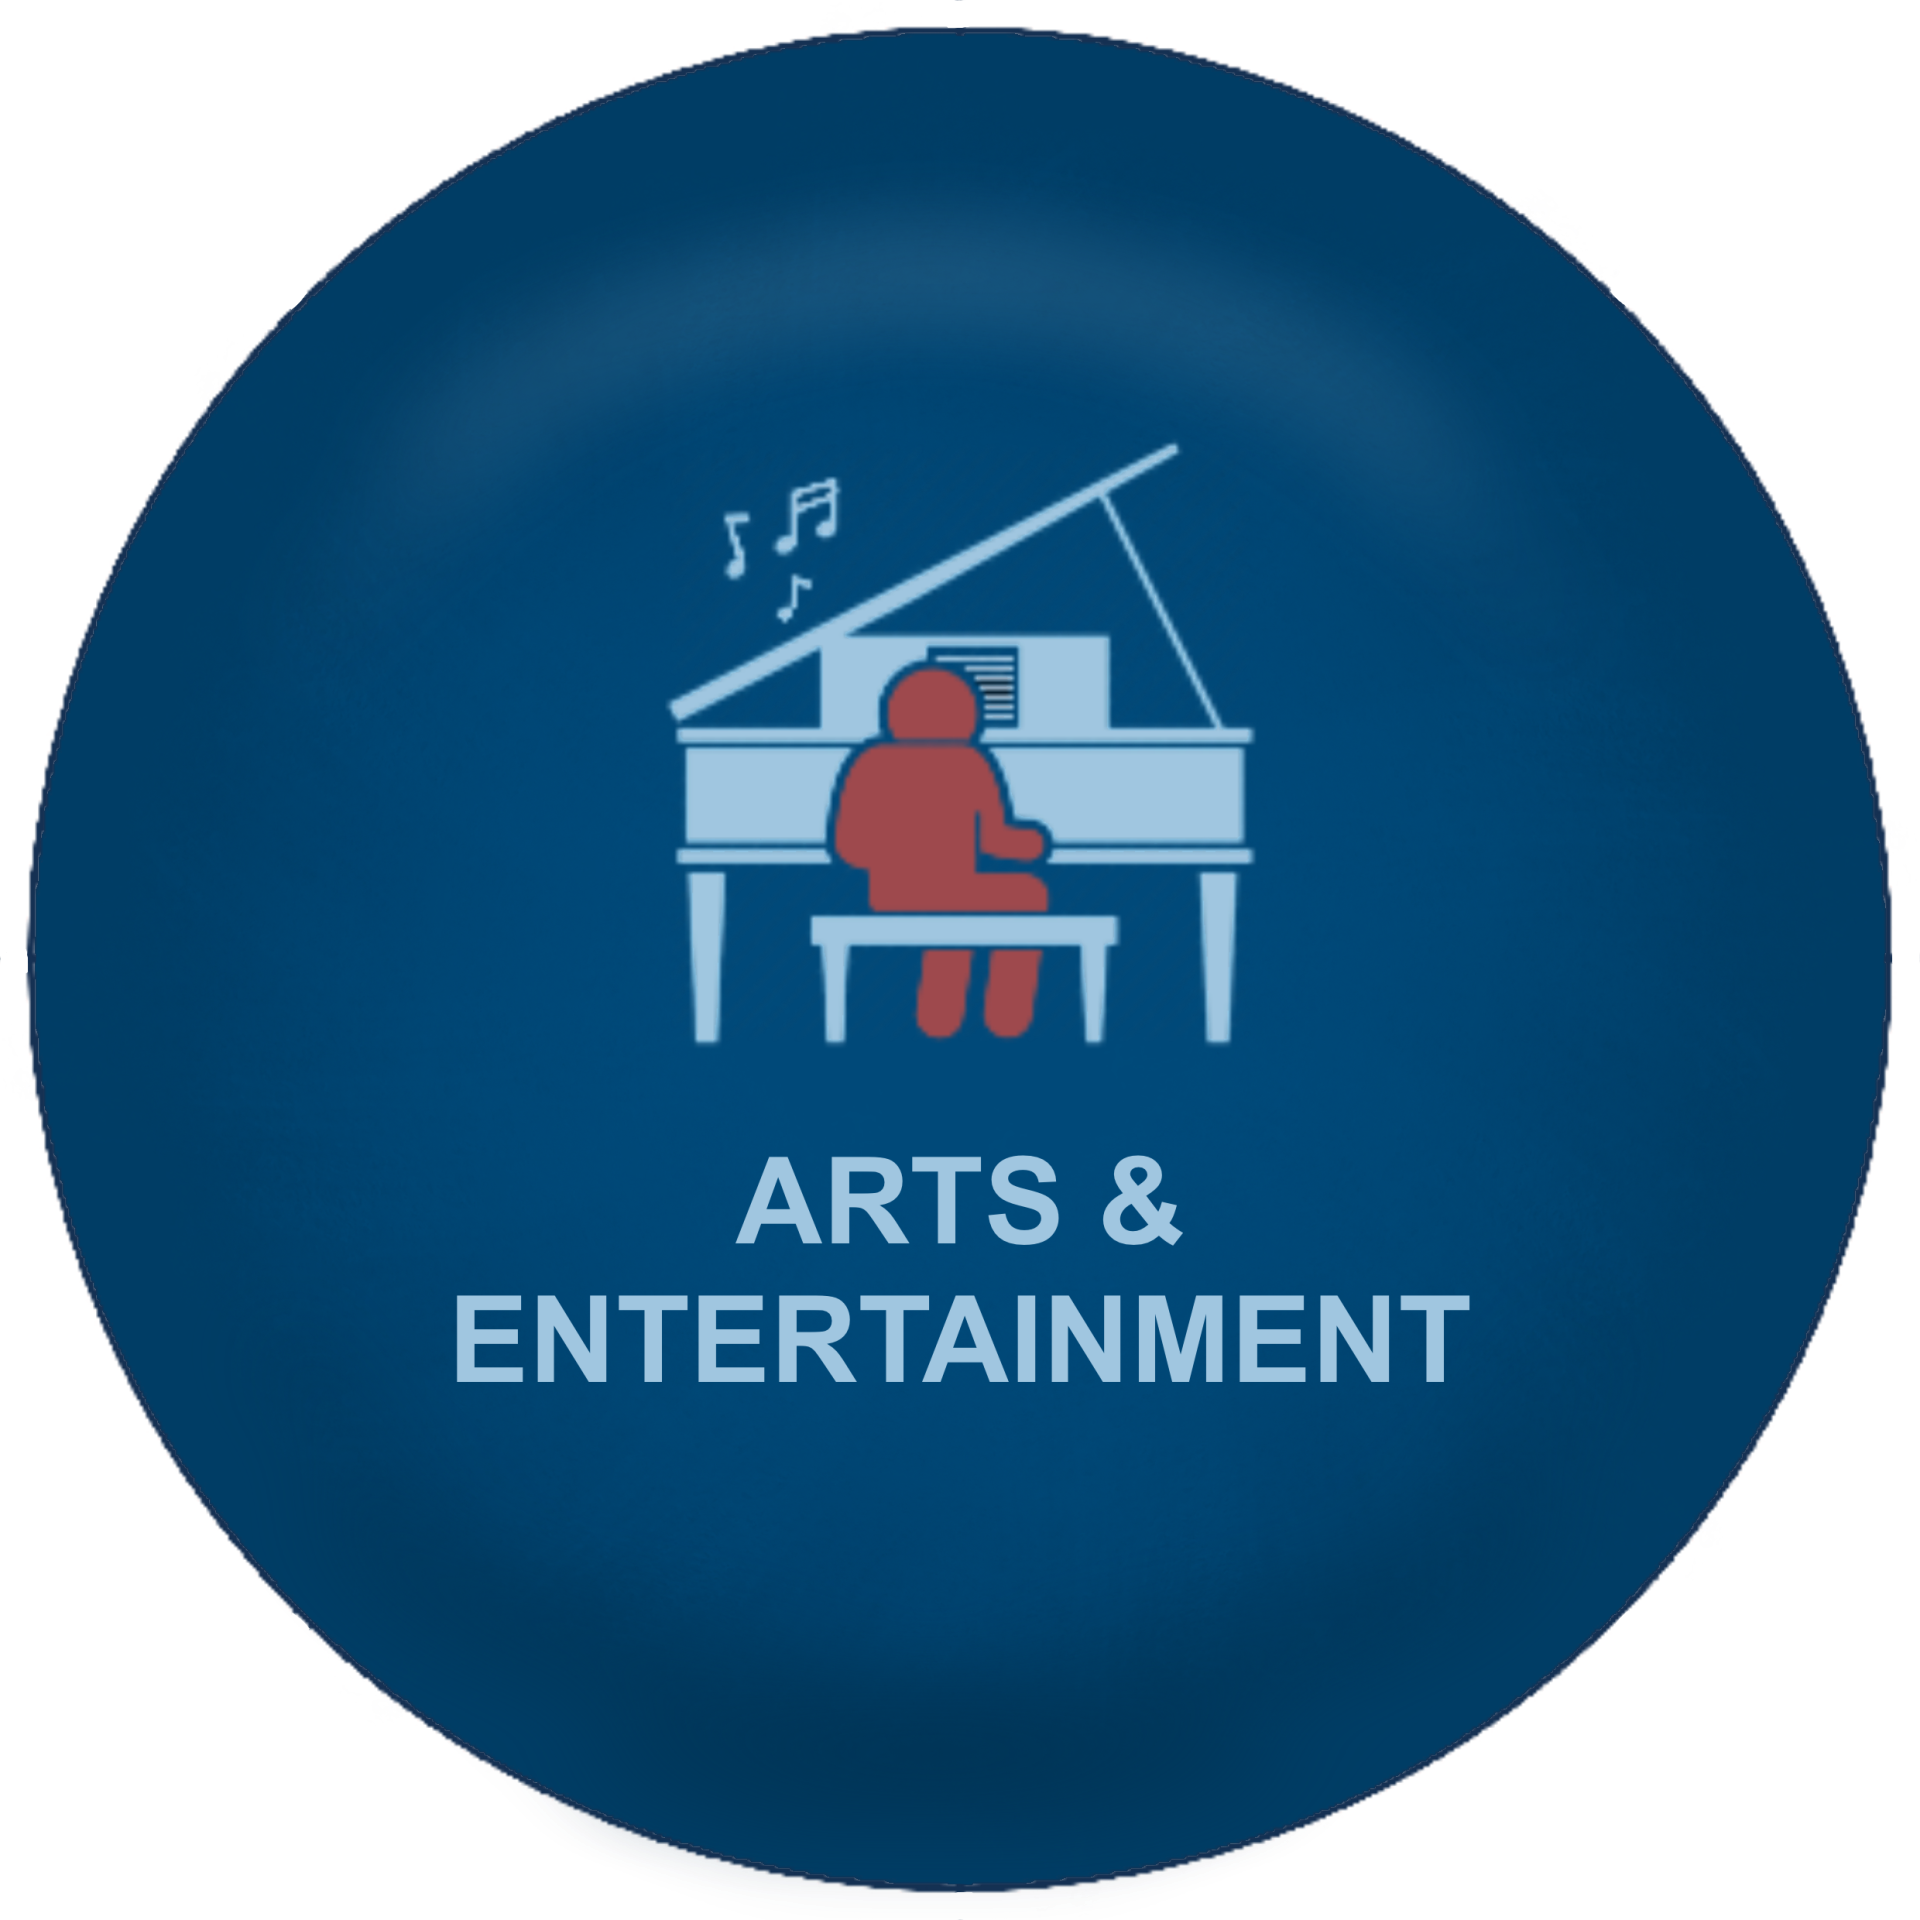 Arts&Entertainment